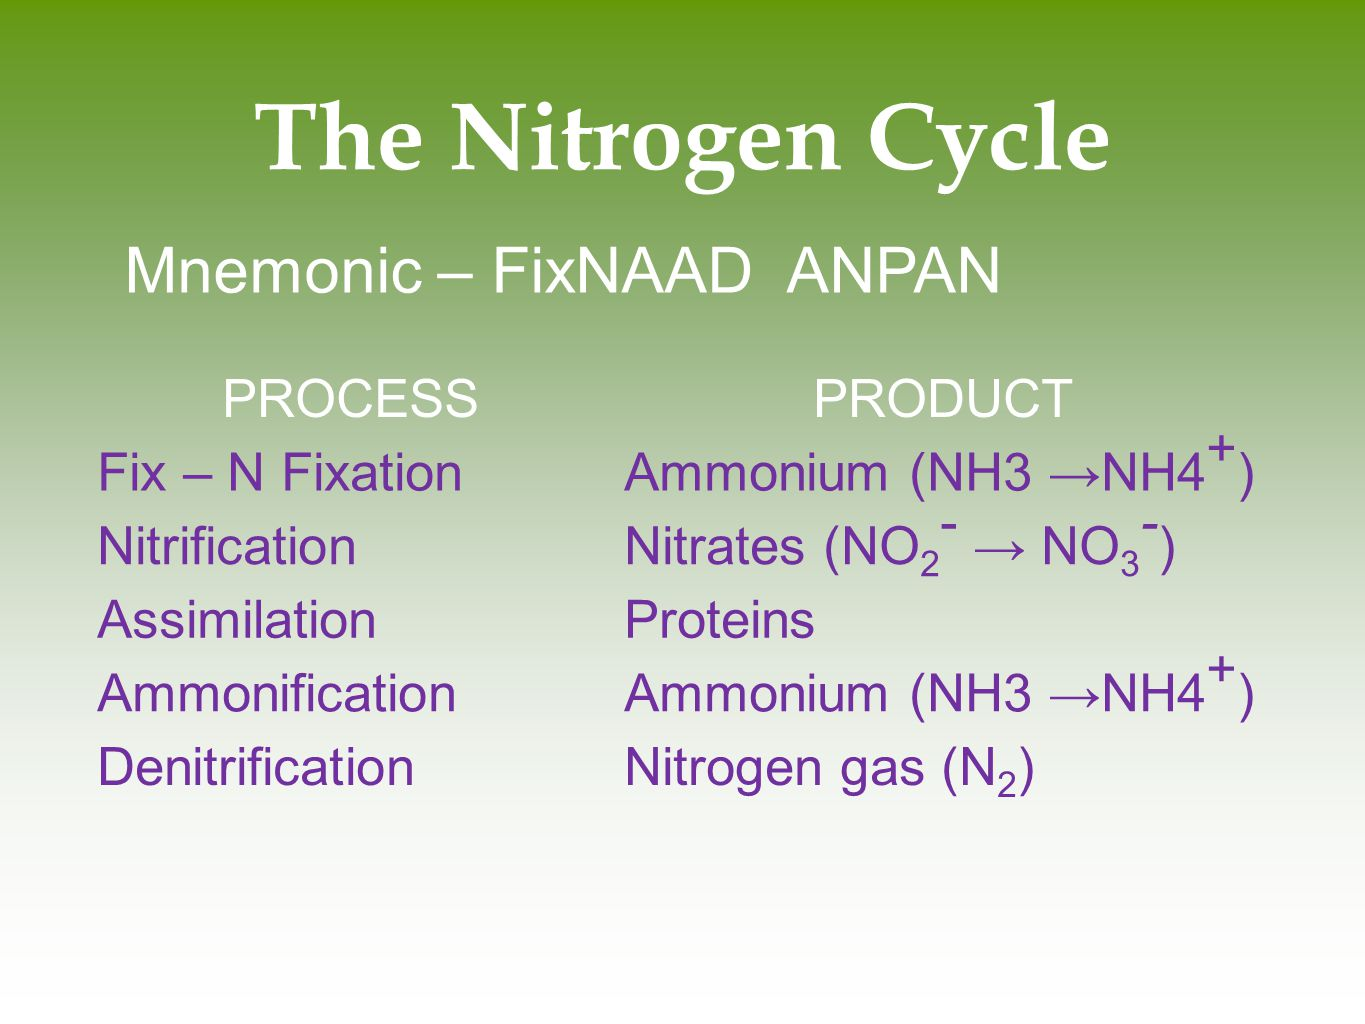 The Nitrogen Cycle Mnemonic – FixNAAD ANPAN PROCESS PRODUCT